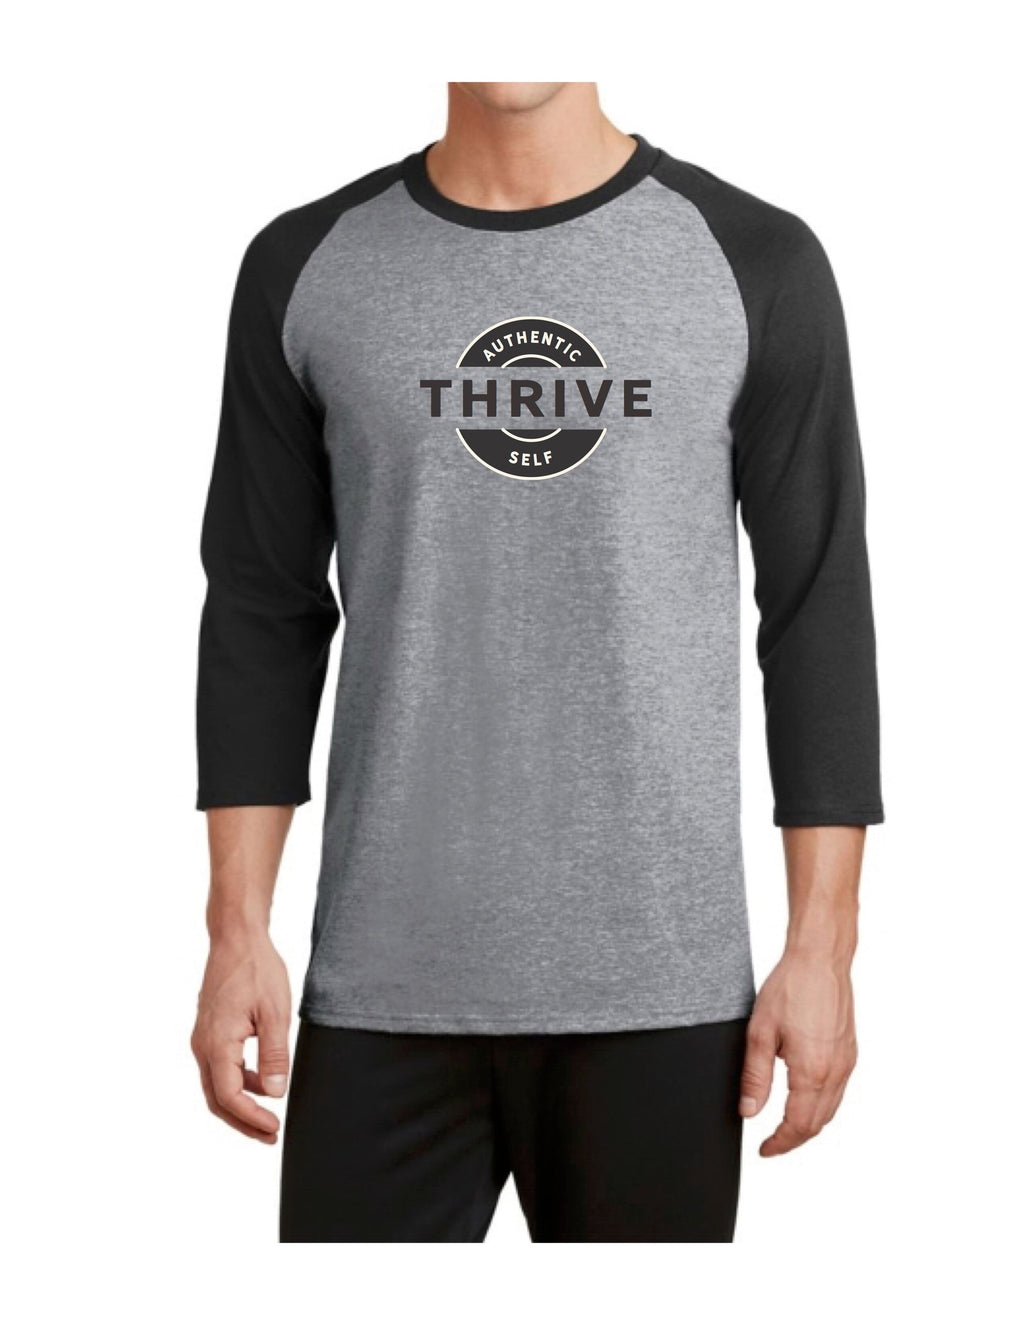 Thrive Baseball Tee